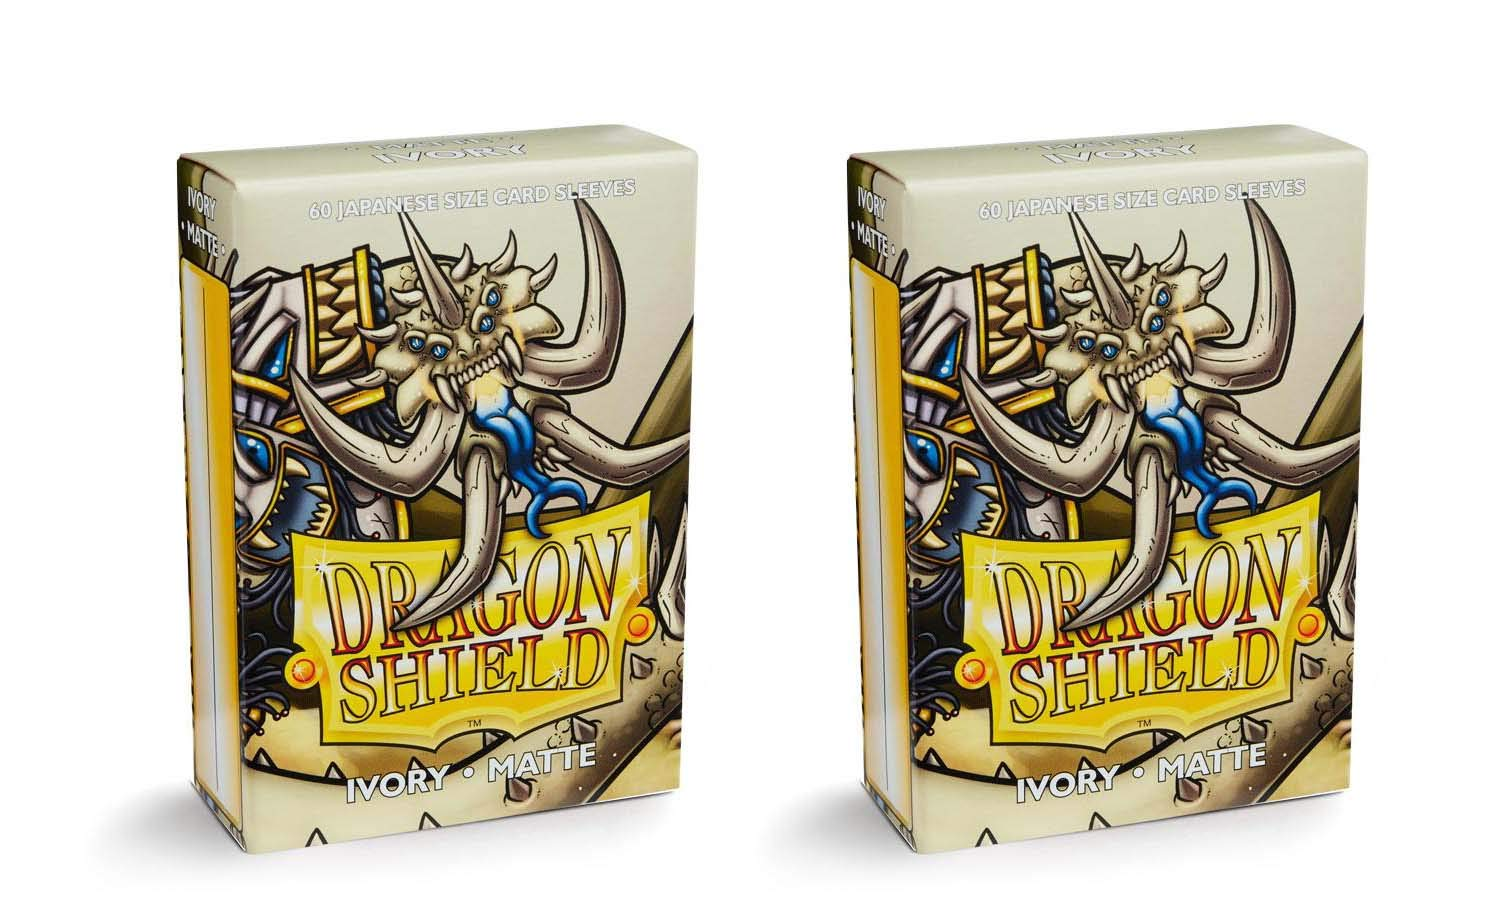 Dragon Shield Bundle: 2 Packs of 60 Count Japanese Size Mini Matte Card Sleeves - Matte Ivory